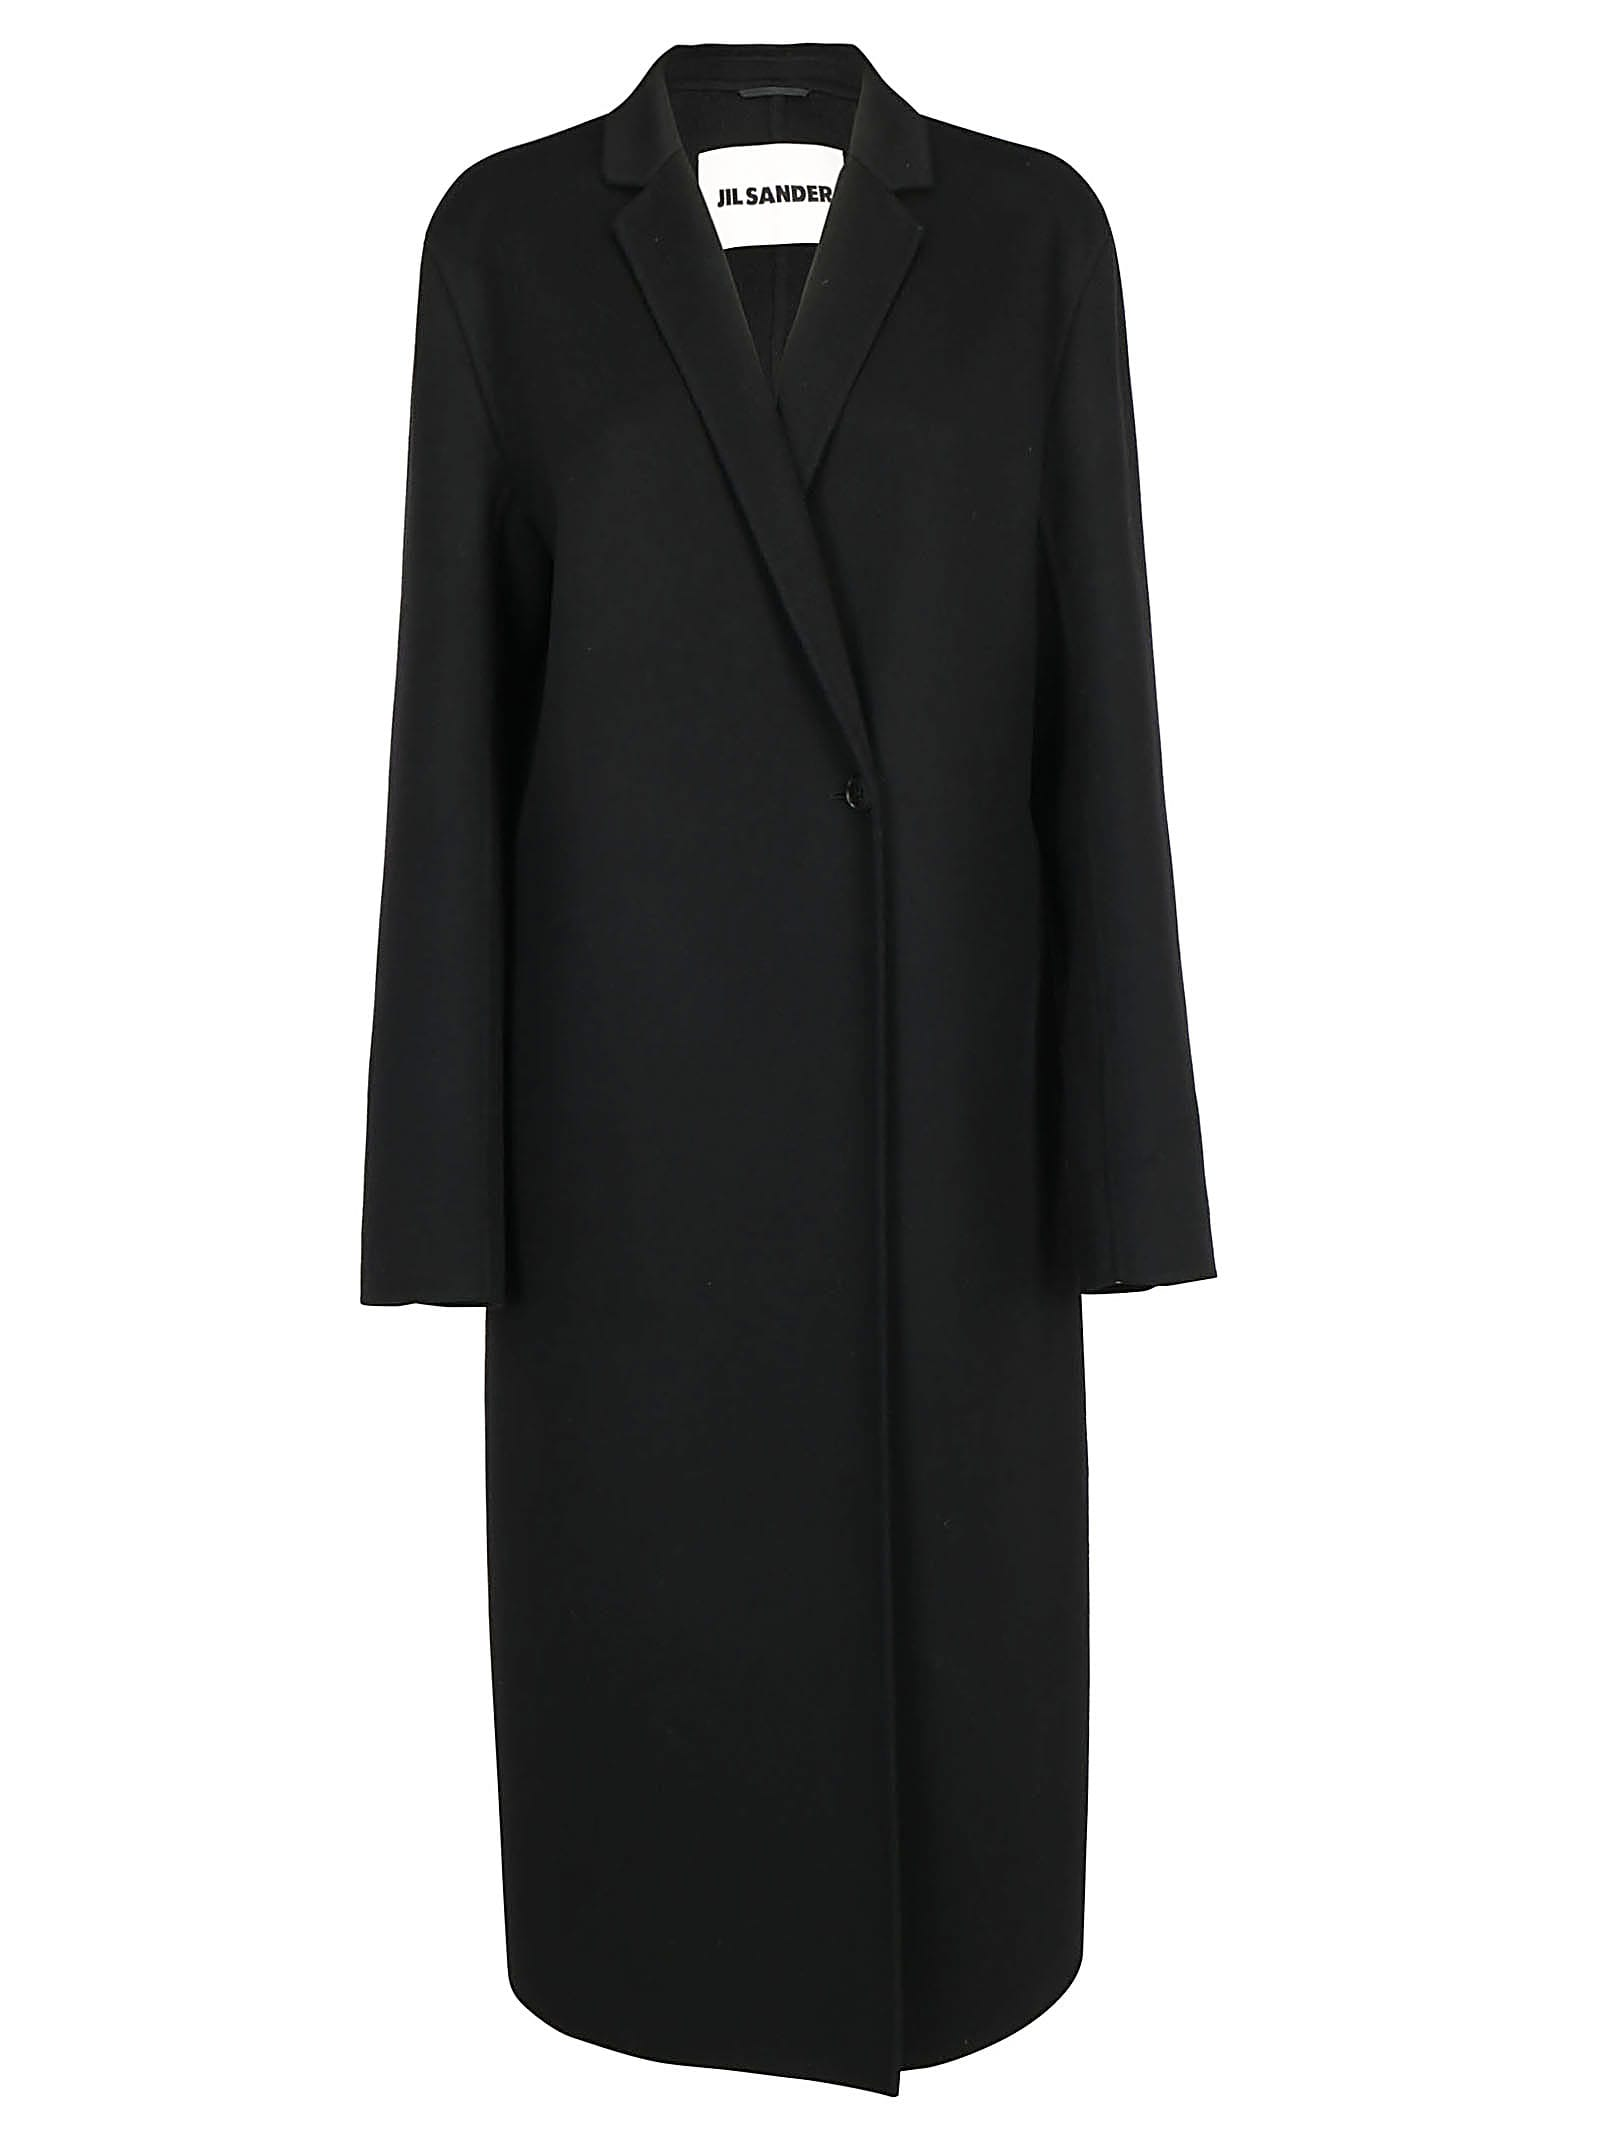 Photo of  Jil Sander Cashmere Lebron Coat- shop Jil Sander jackets online sales